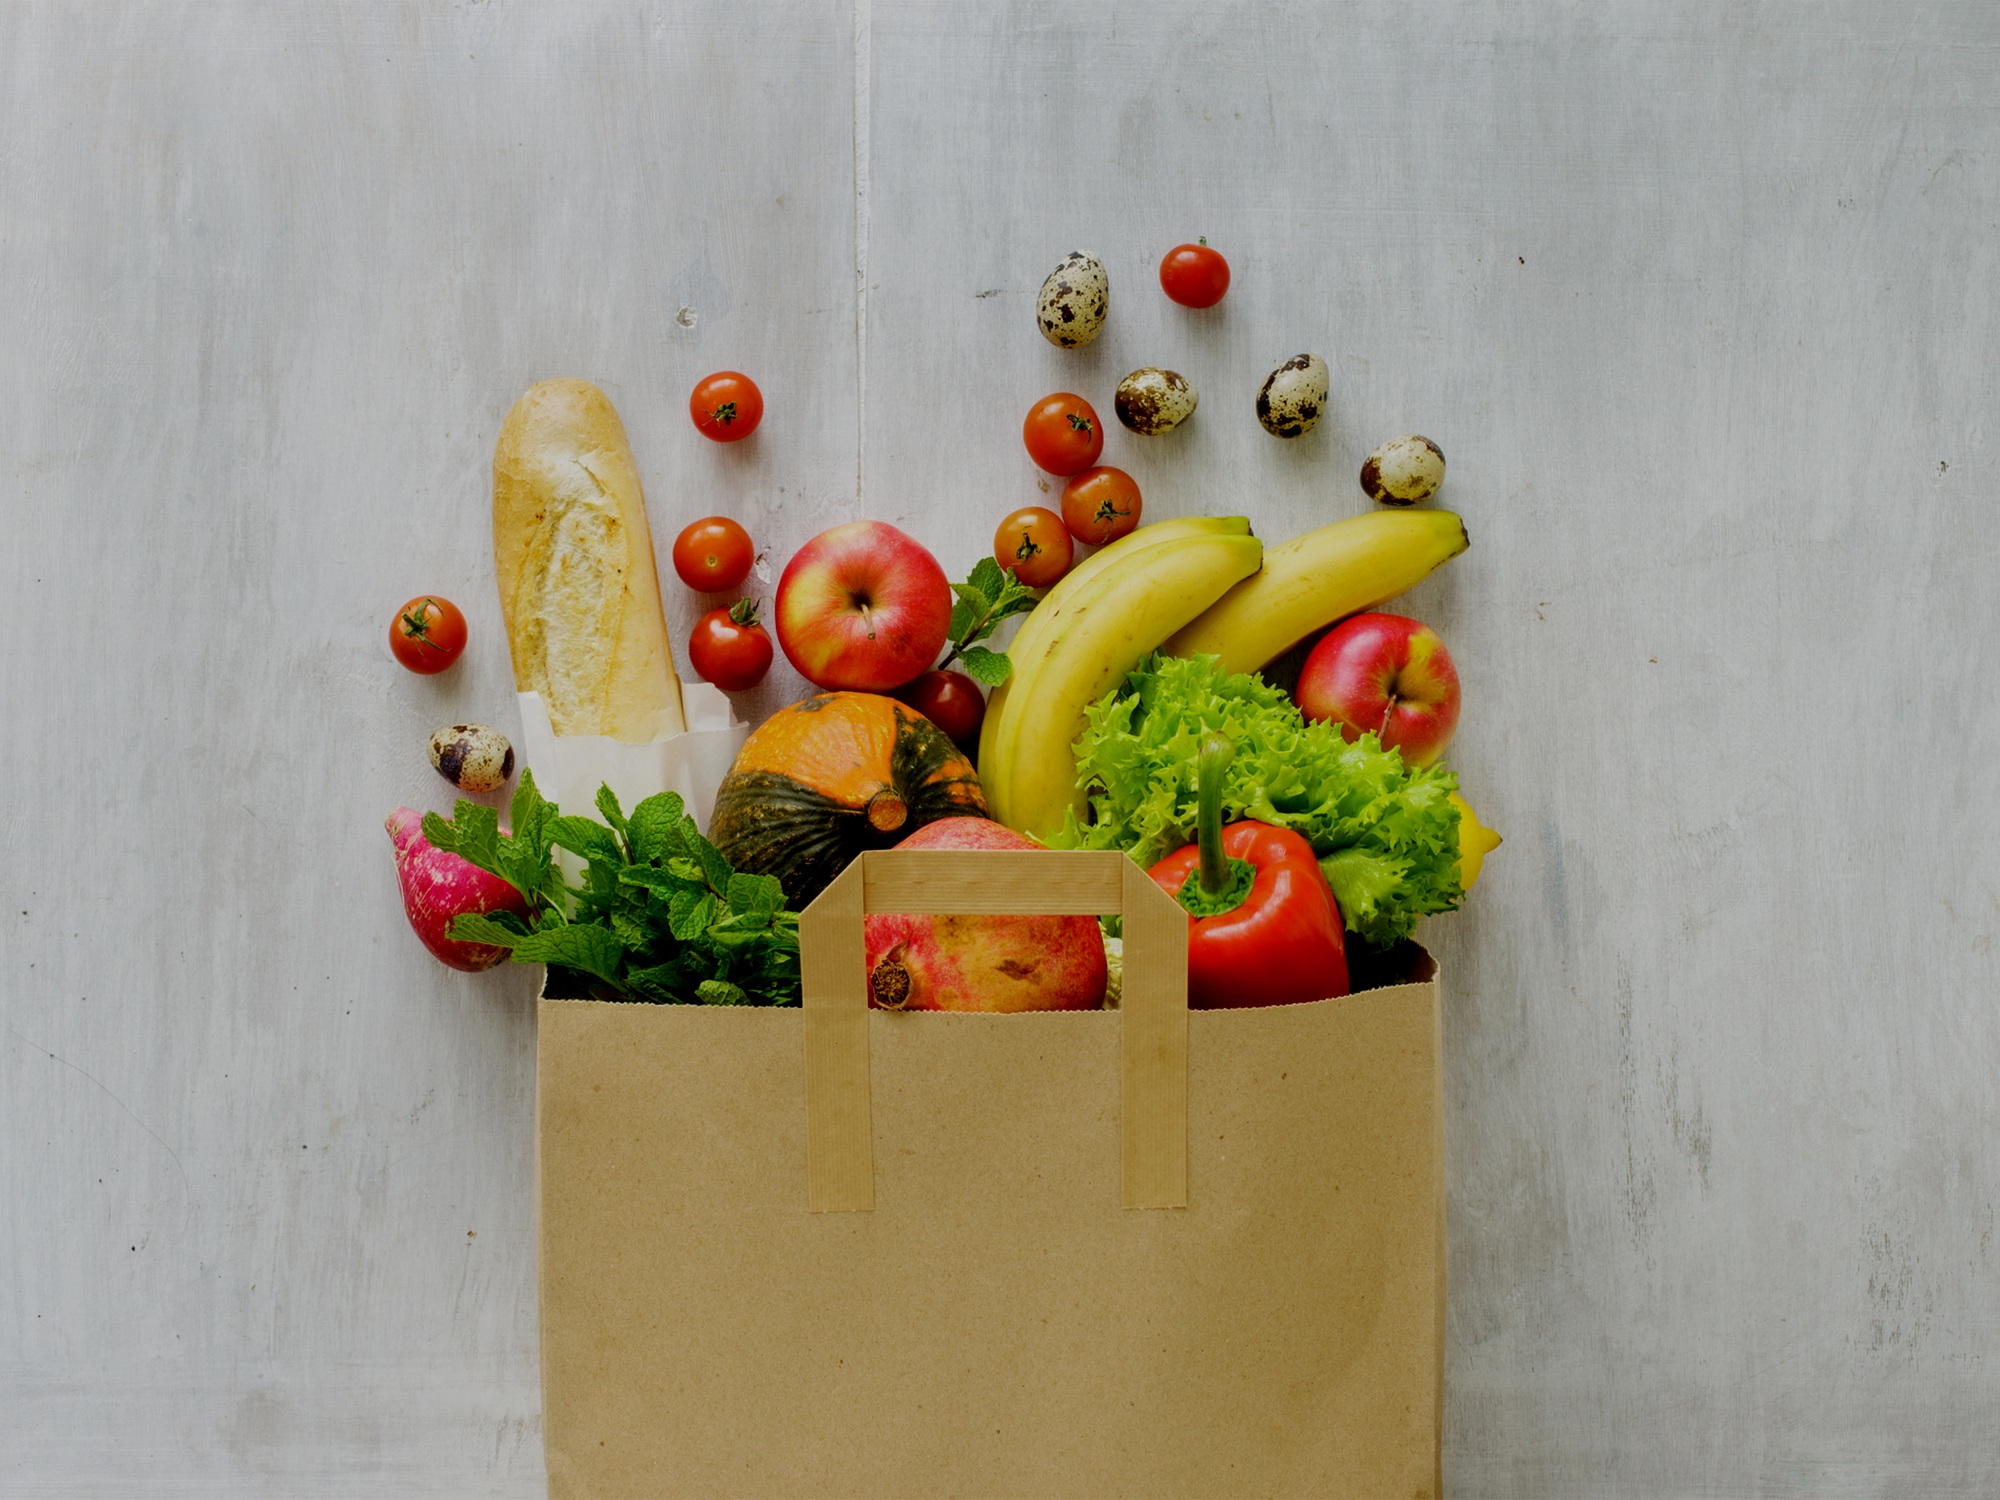 Retail - From recipe recommendations to grocery delivery providers, Chefling provides a complete kitchen solution.